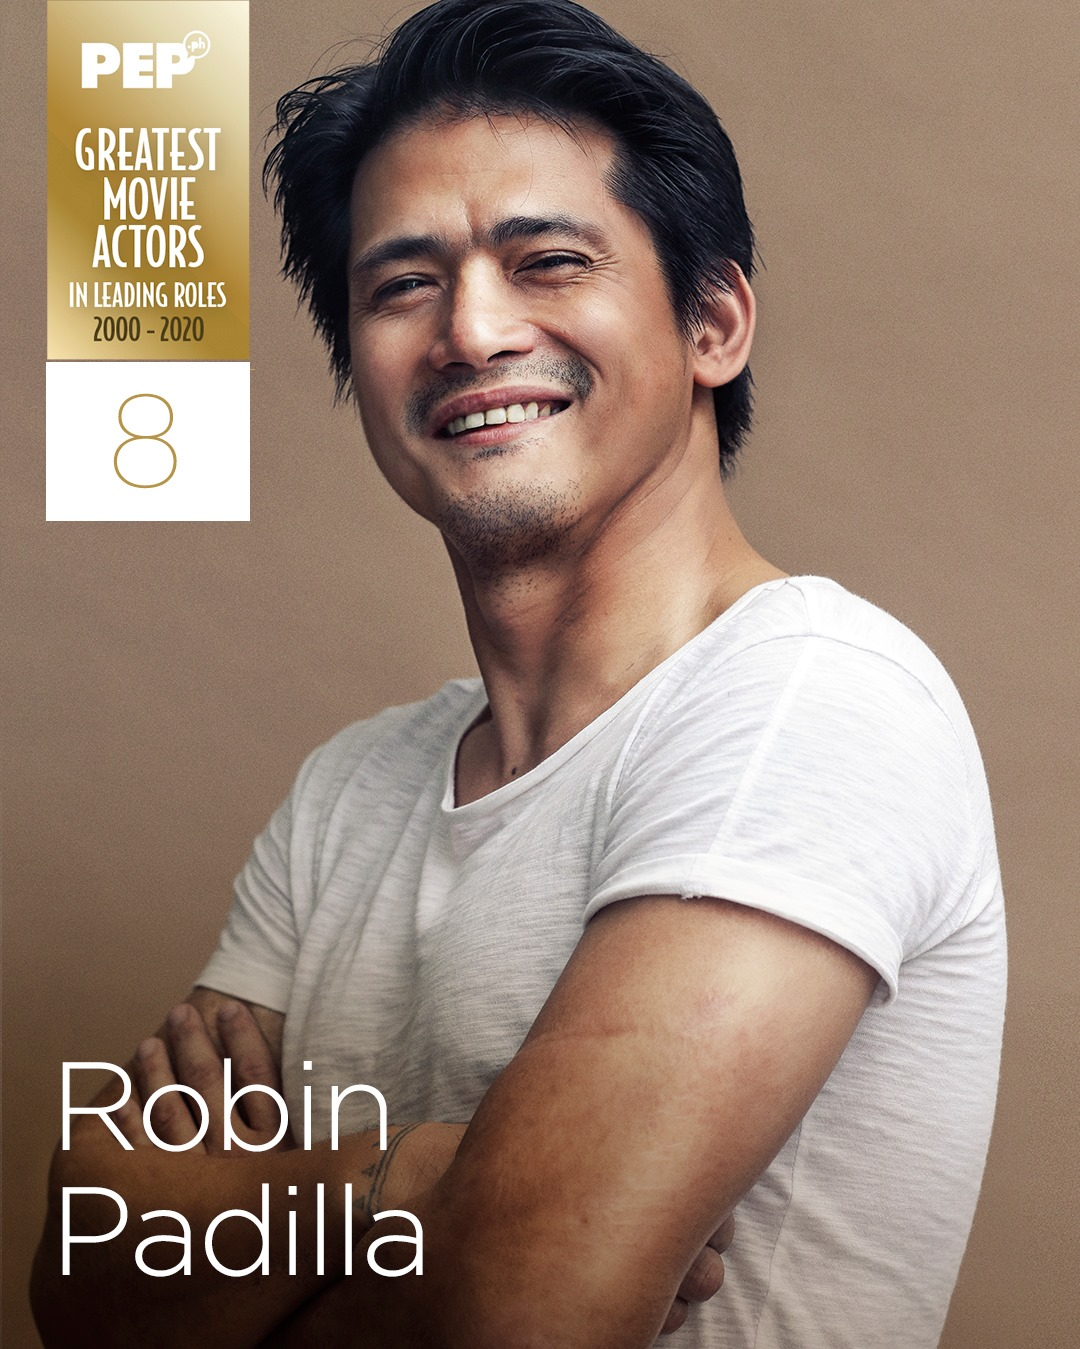 Robin Padilla, 15 Greatest Movie Actors in Leading Roles